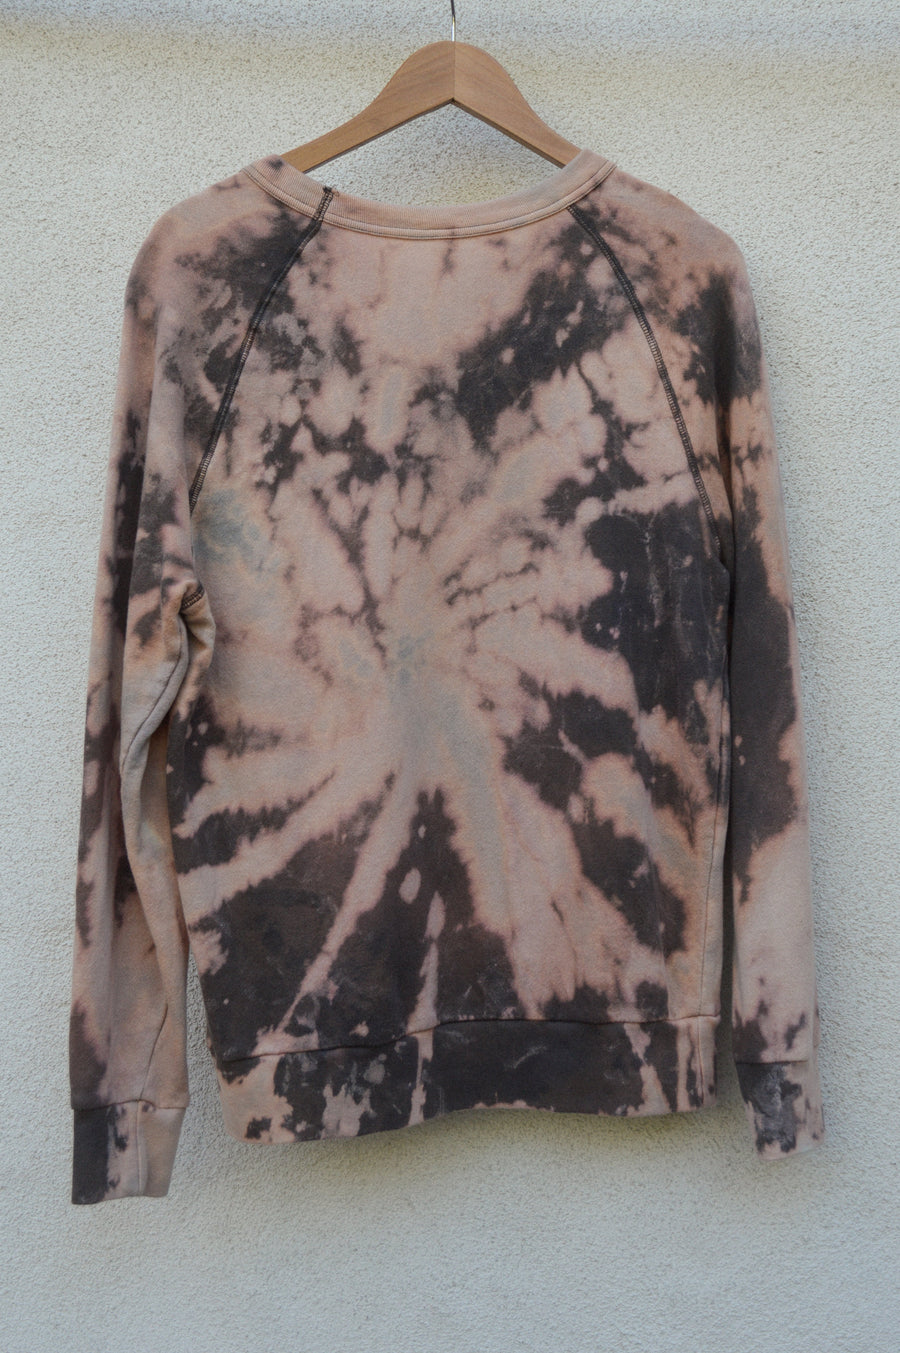 Bleach Dyed Sweatshirt Crewneck || tie dye, tye dye, eco friendly, sustainable, aesthetic clothing, gift for him, gift for her, loungewear